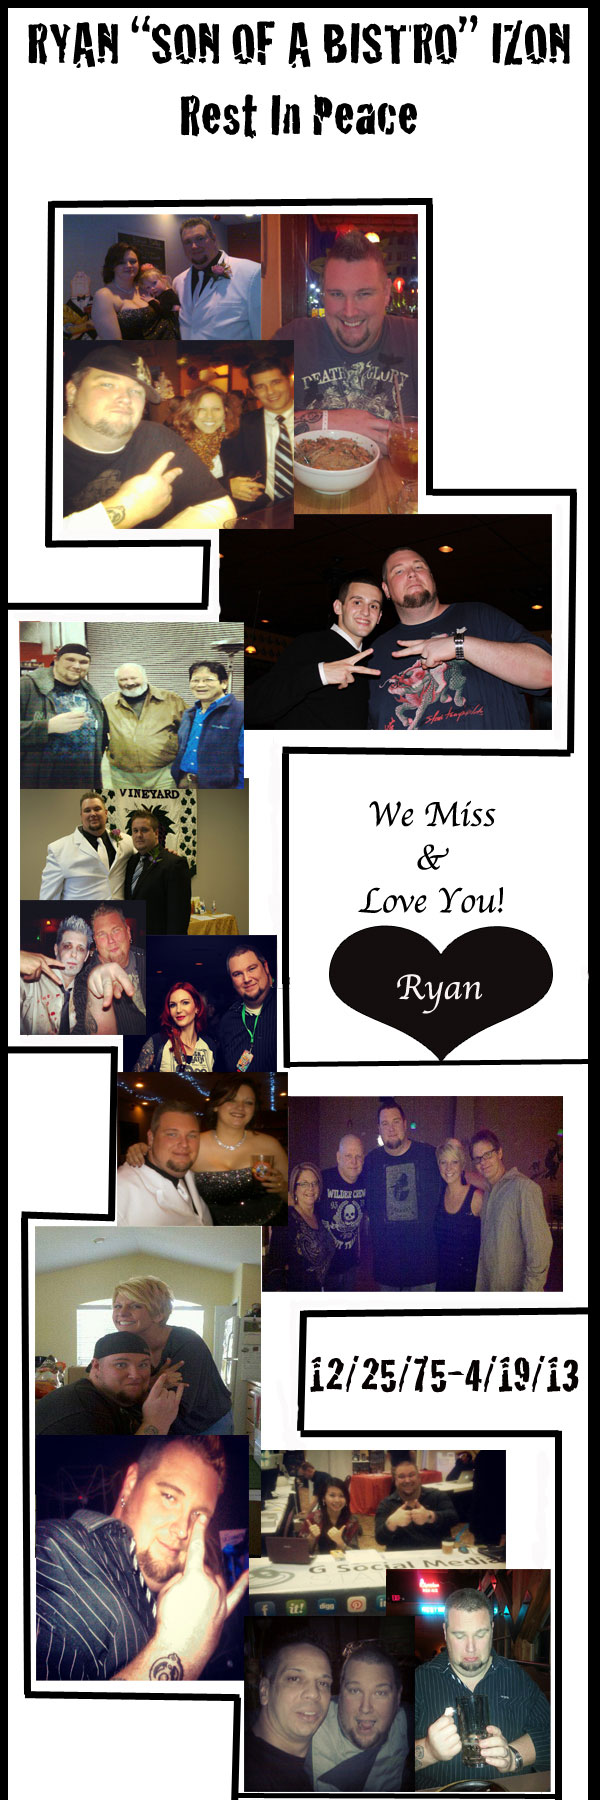 Ryan Izon - Son of a Bistro - Rest in Peace 12/25/75 - 4/19/13